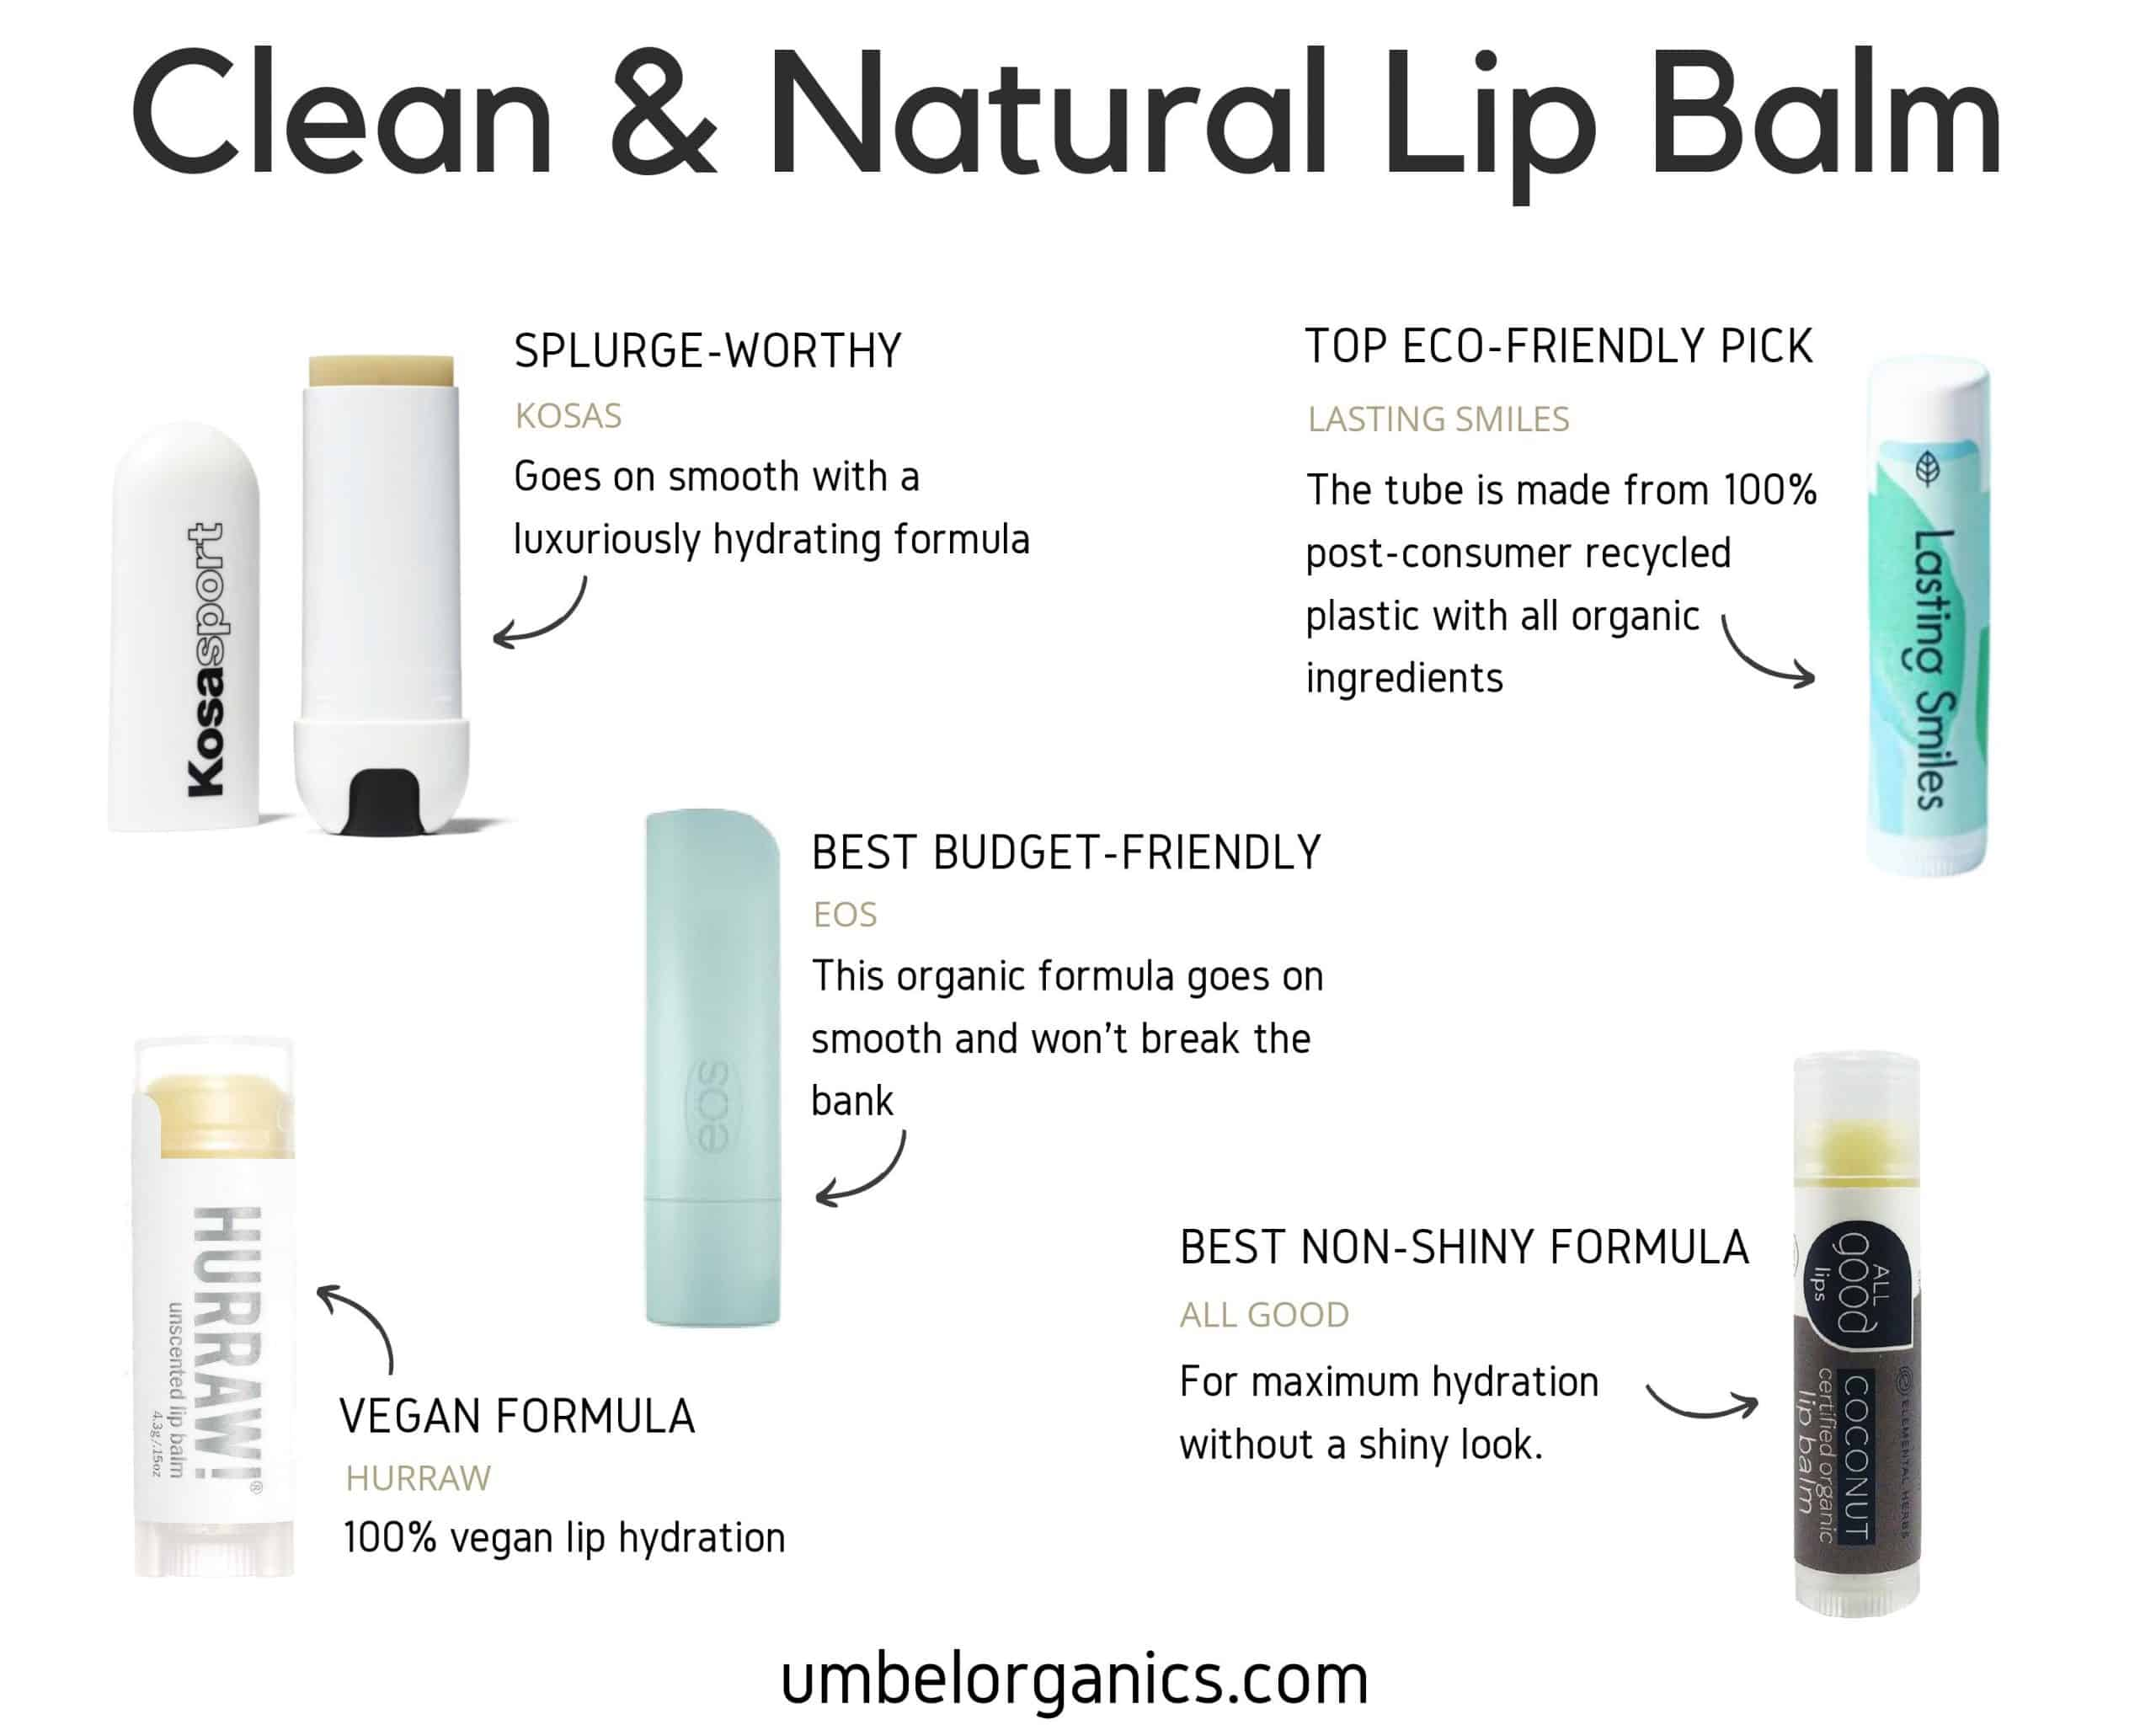 Clean Lip Balm Top Picks, including Kosas, EOS, Lasting Smiles, Hurraw, and All Good